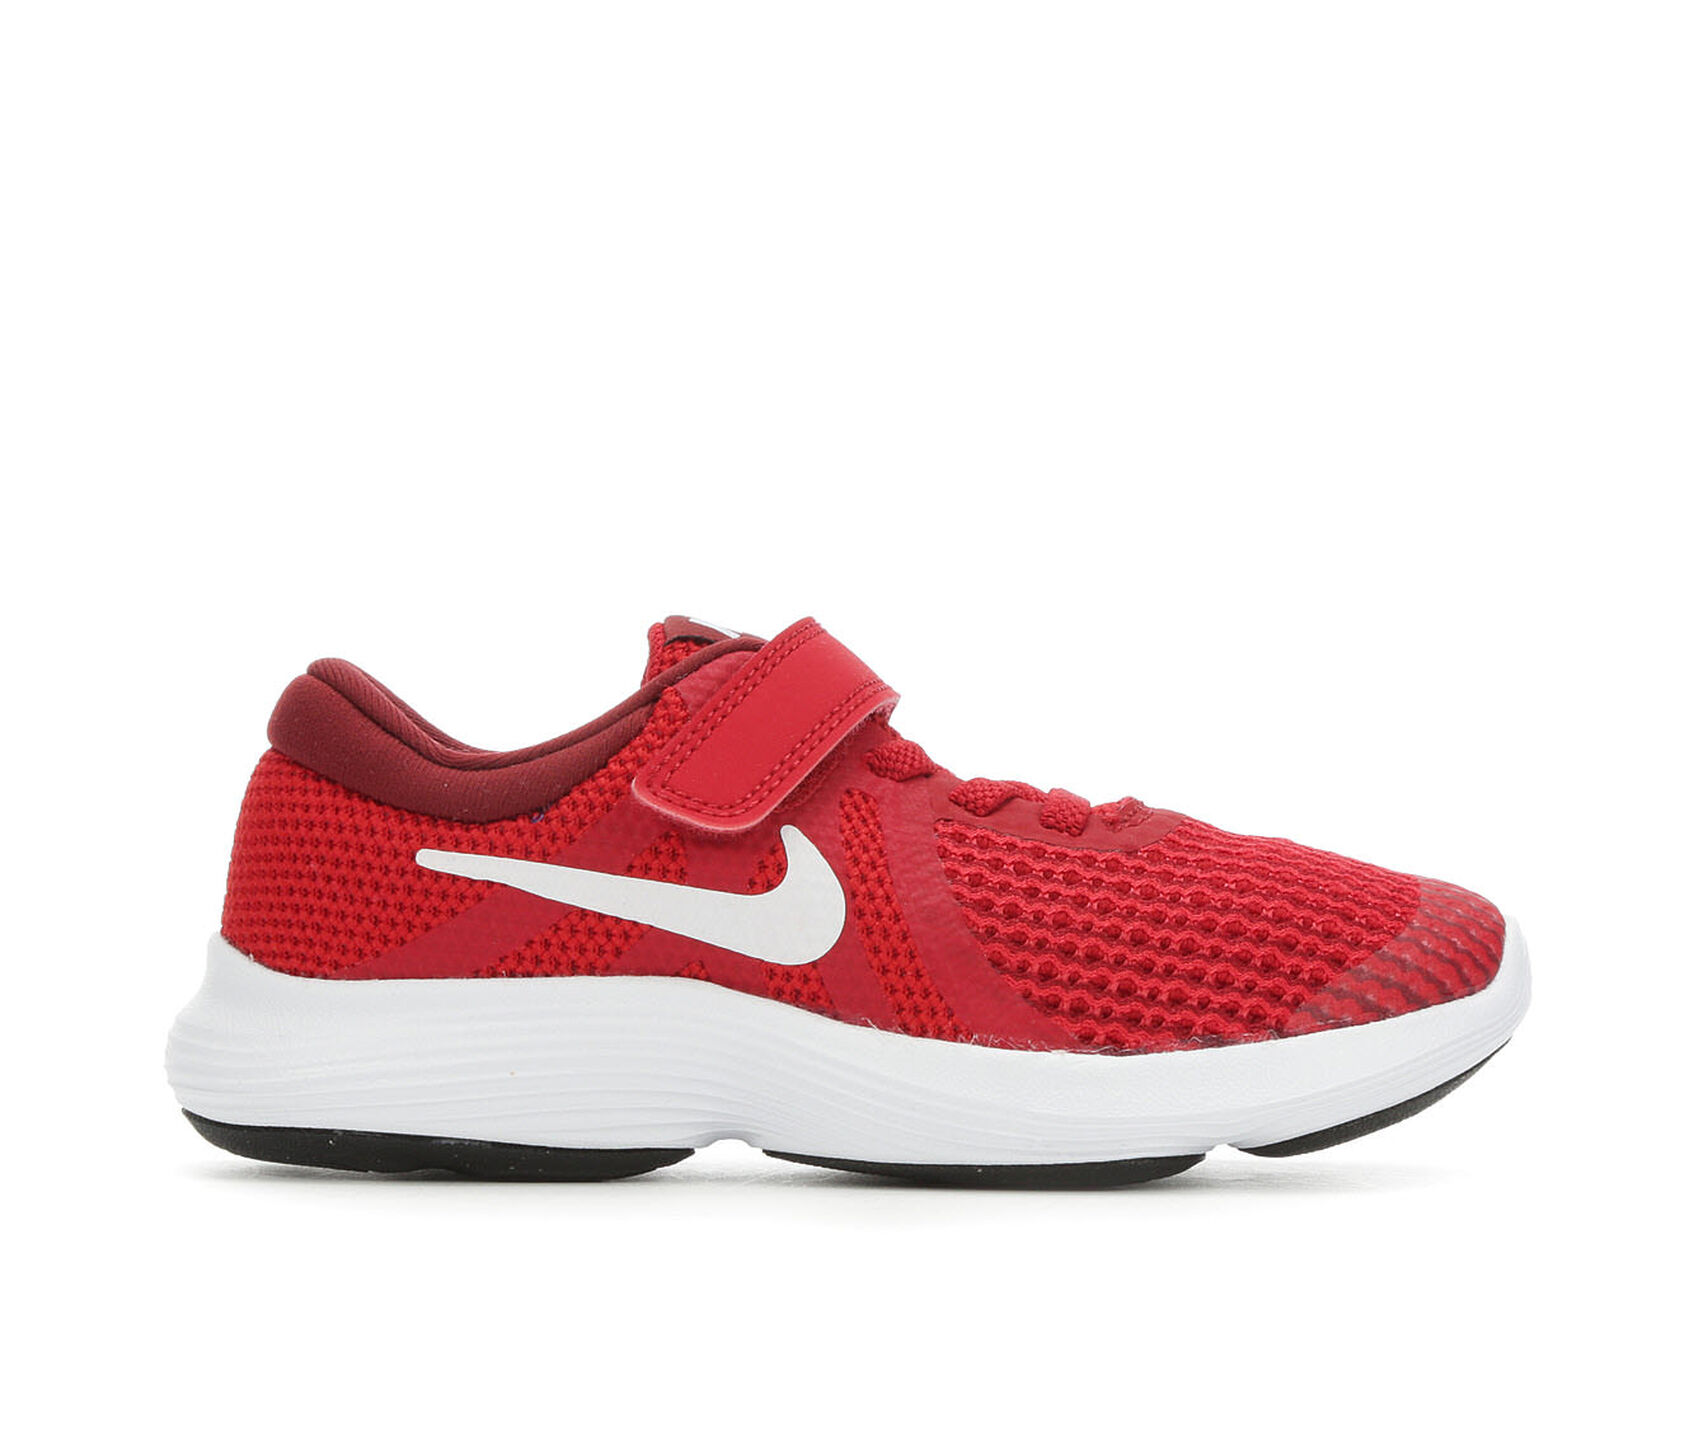 b1820a38180b ... Nike Little Kid Revolution 4 Running Shoes. Previous